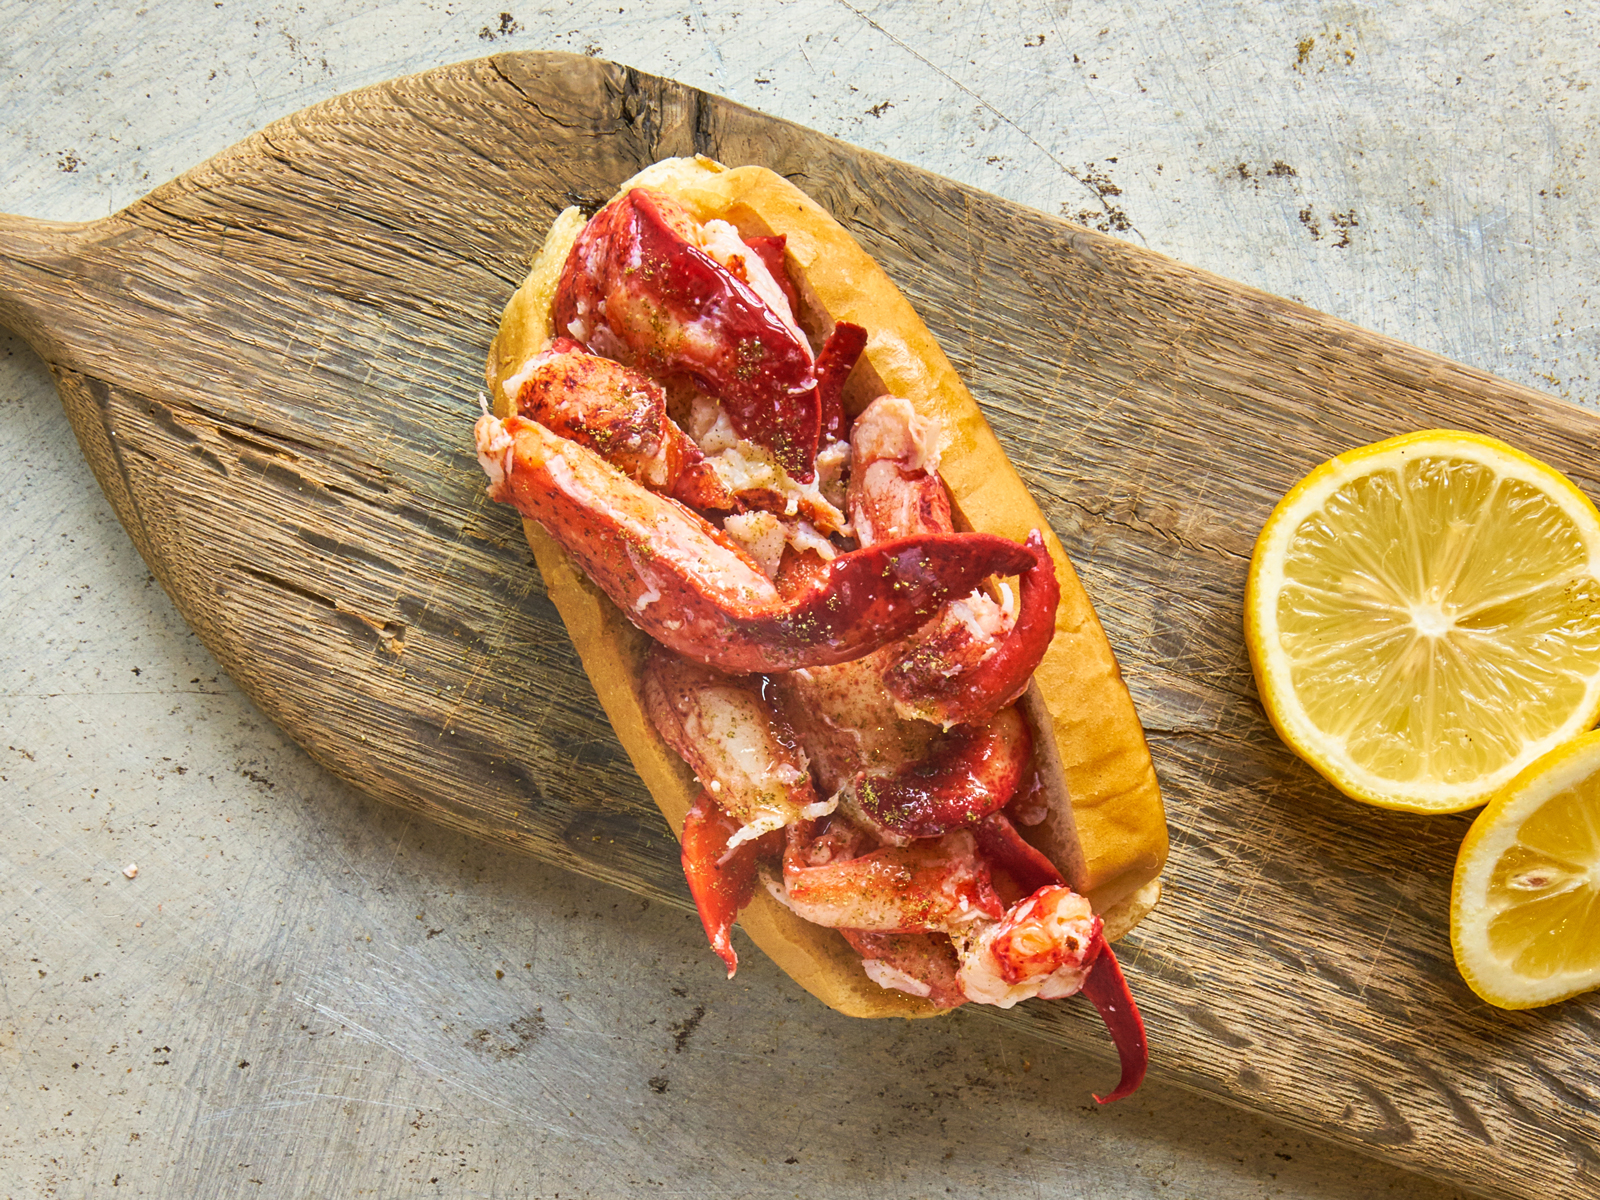 Why Luke's Lobster Dropped the Price of Lobster Rolls